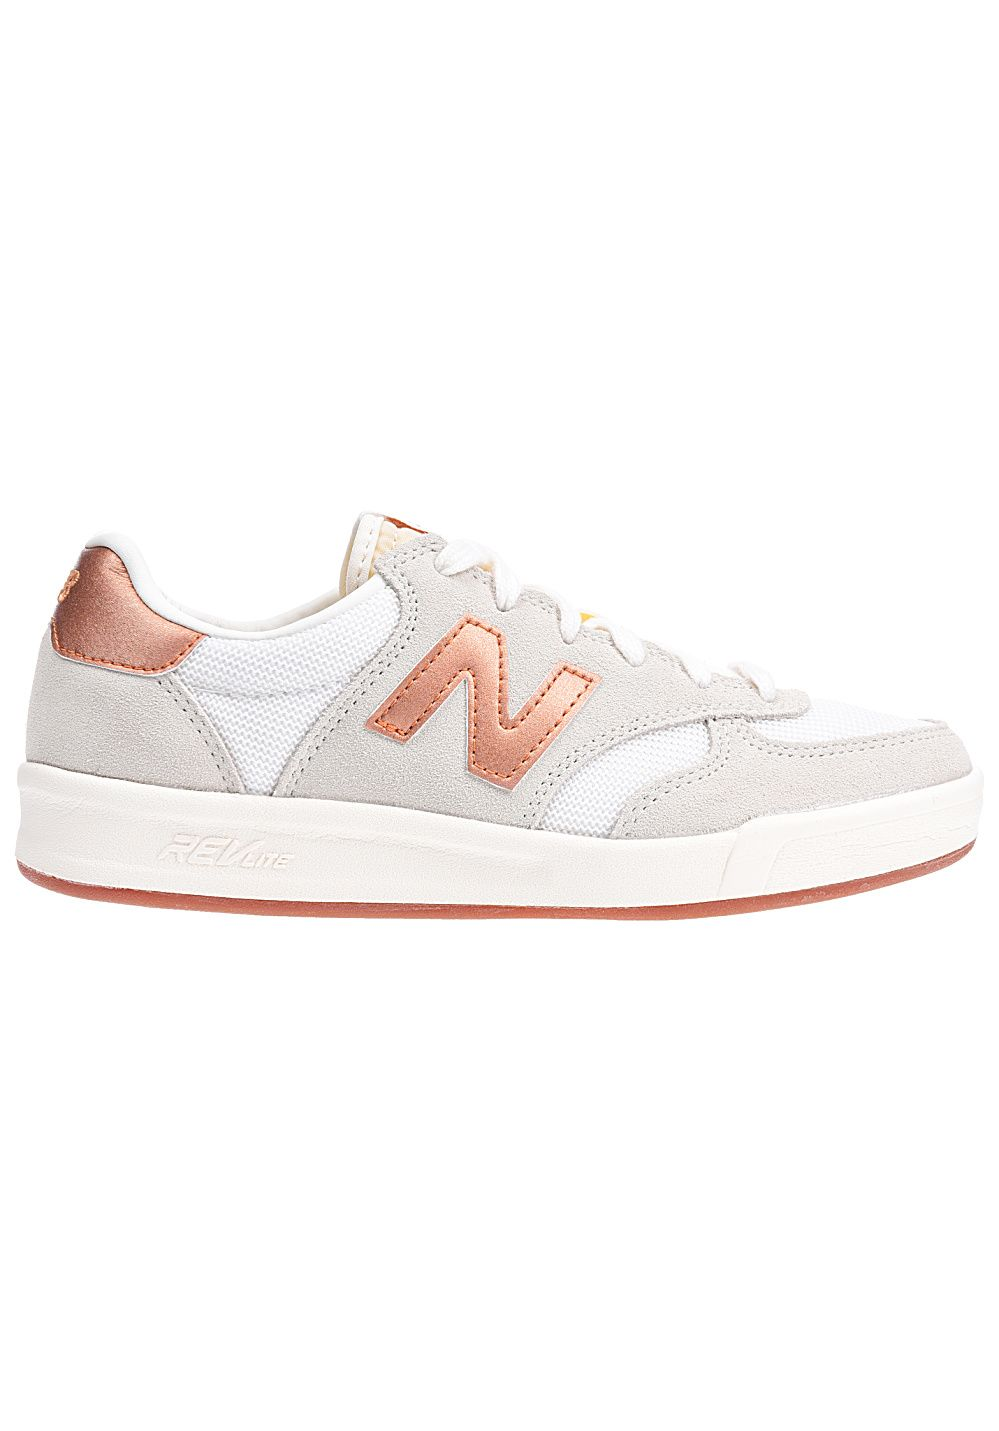 NEW BALANCE WRT300 B Baskets pour Femme Blanc | top top top